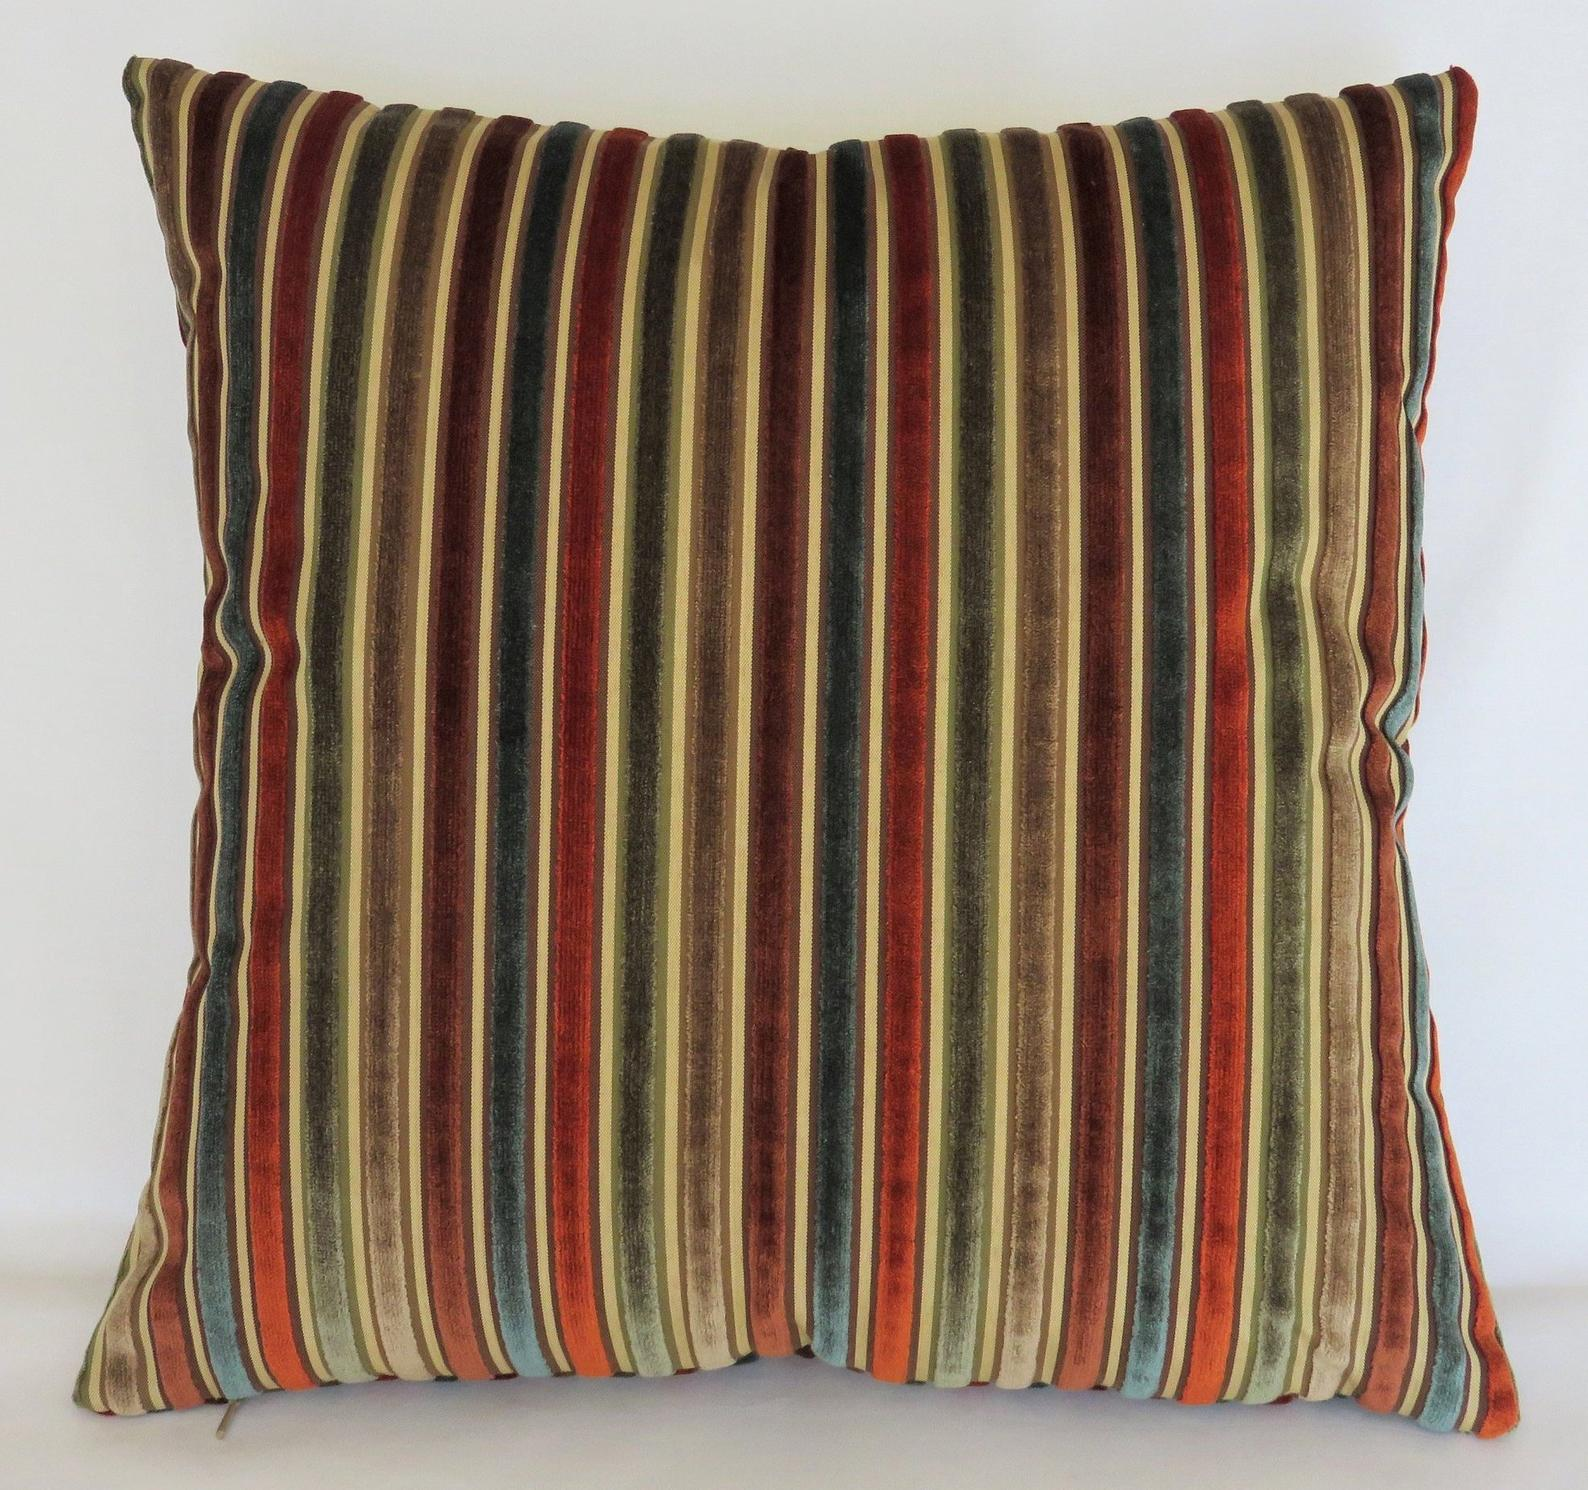 Teal Rust Olive Stripe Velvet Pillow Cover